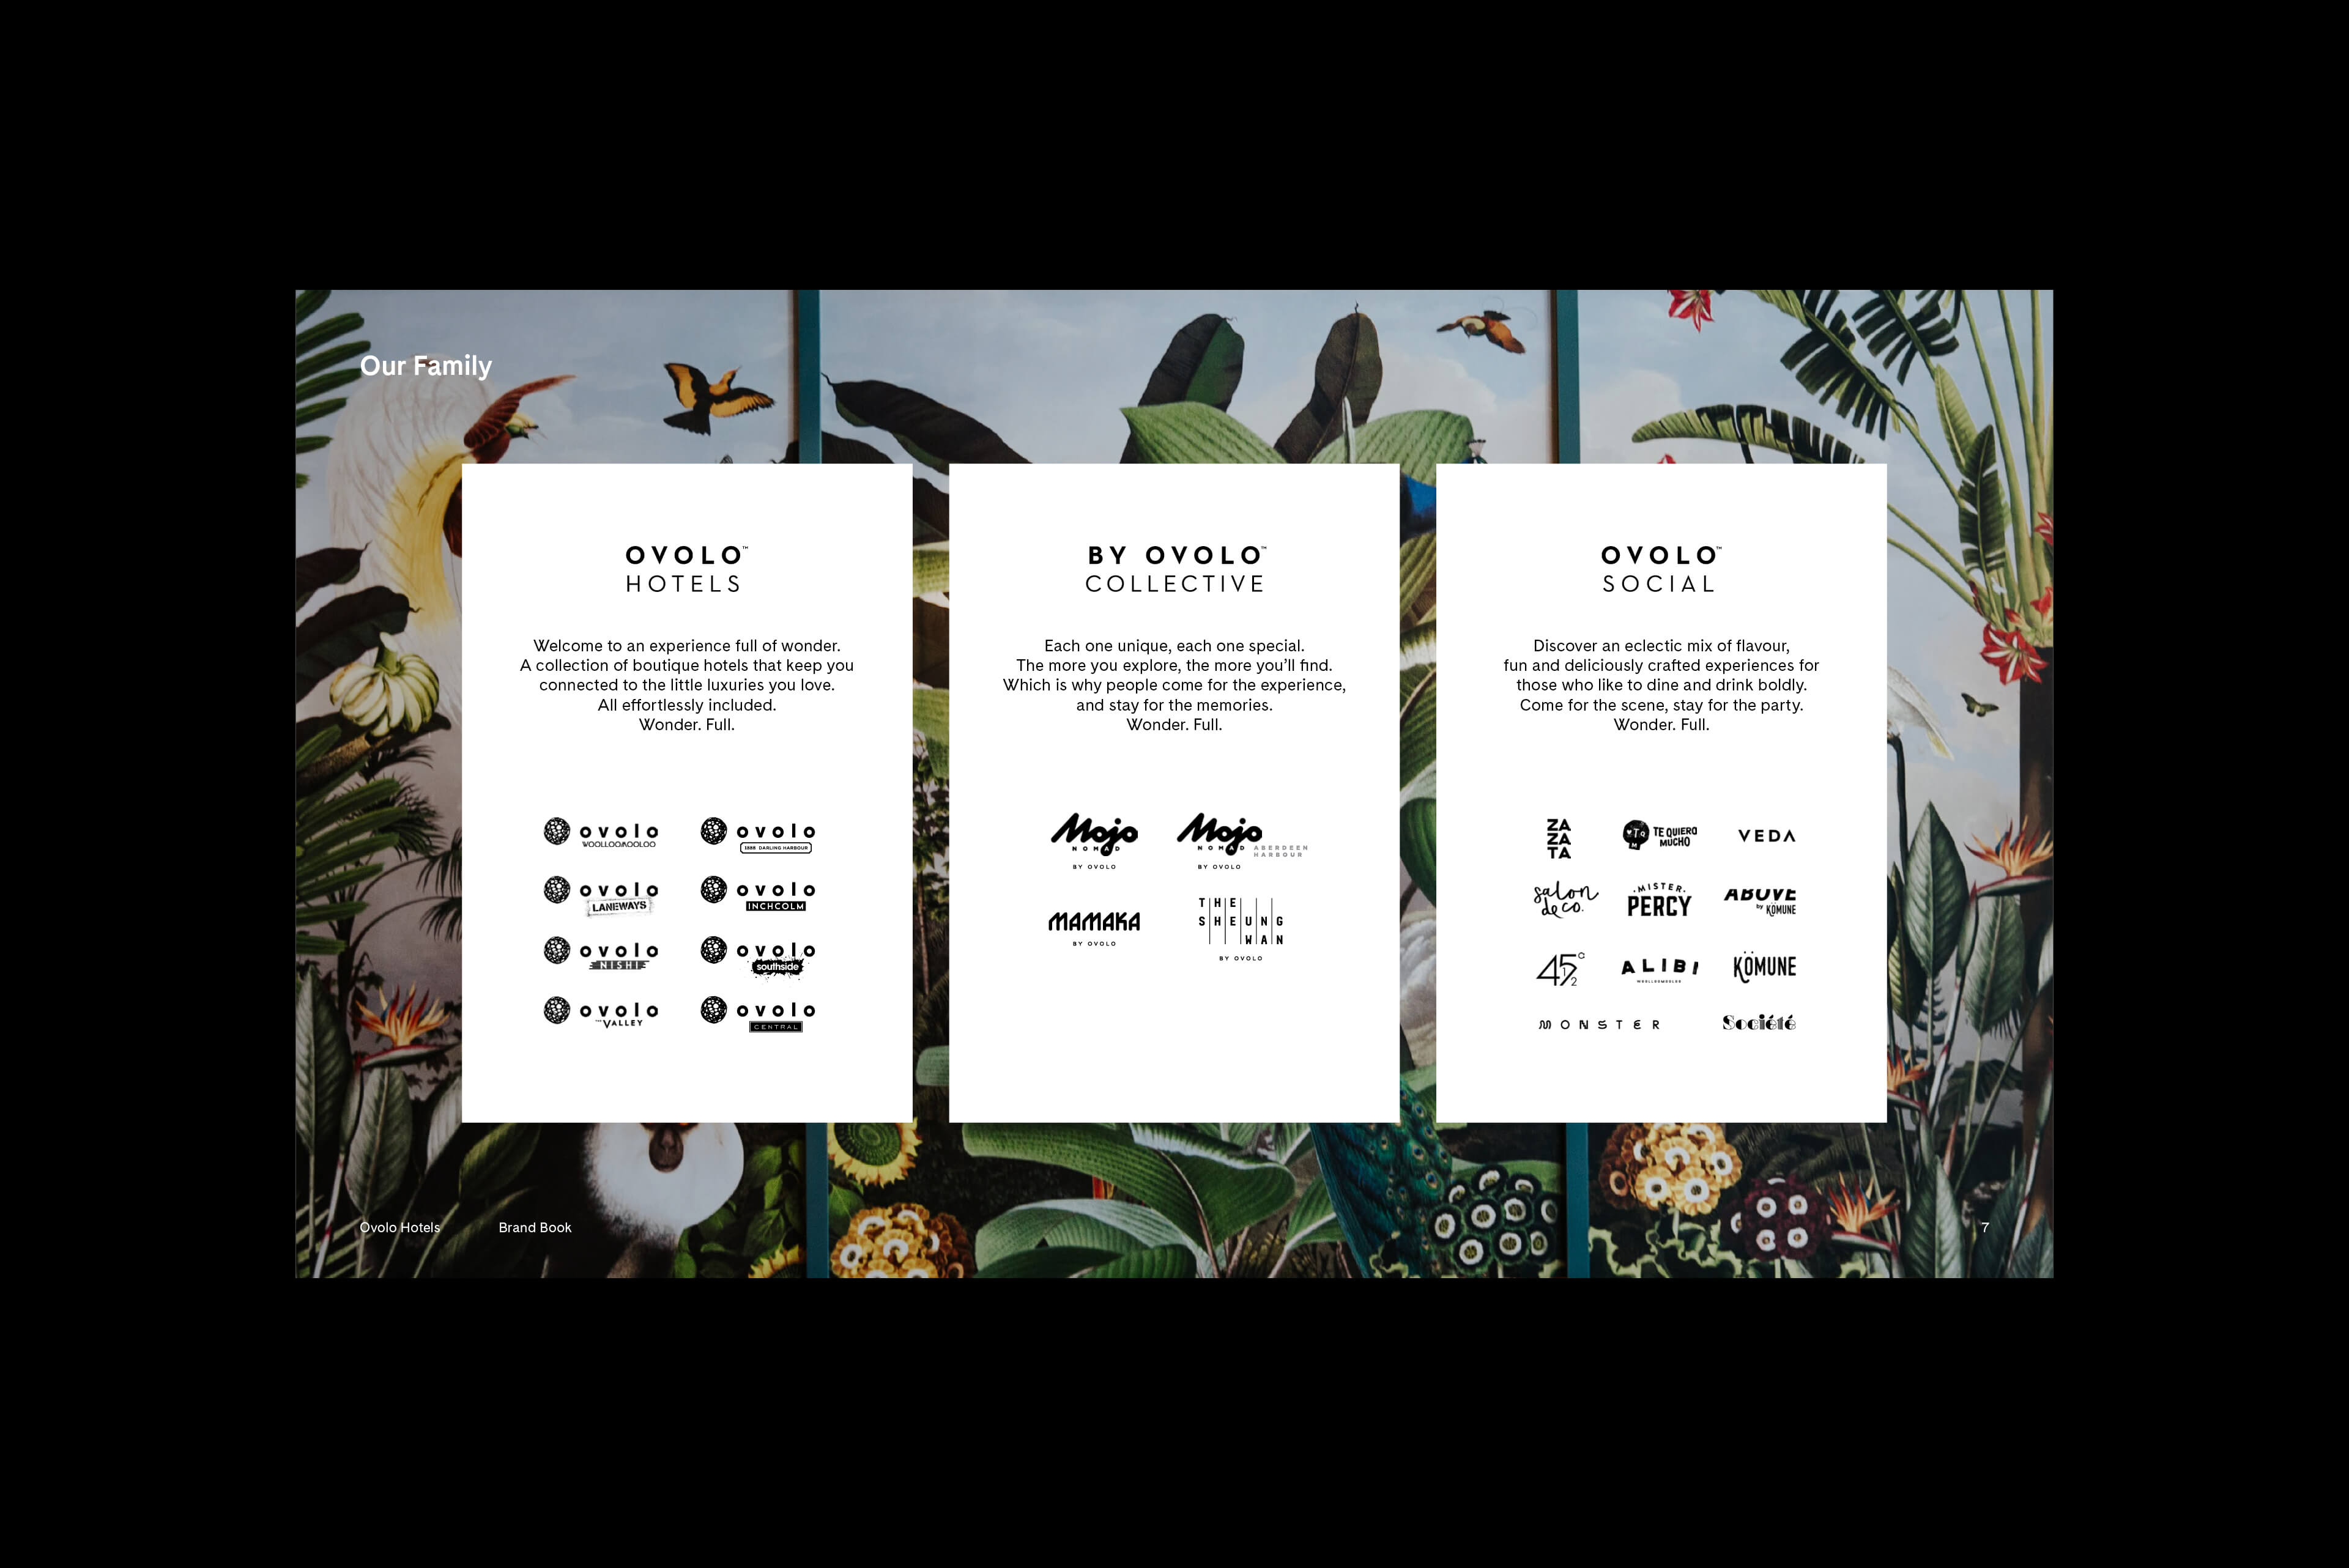 Ovolo Hotels Brand Refresh - Wonder. Full. Brand Services Architecture